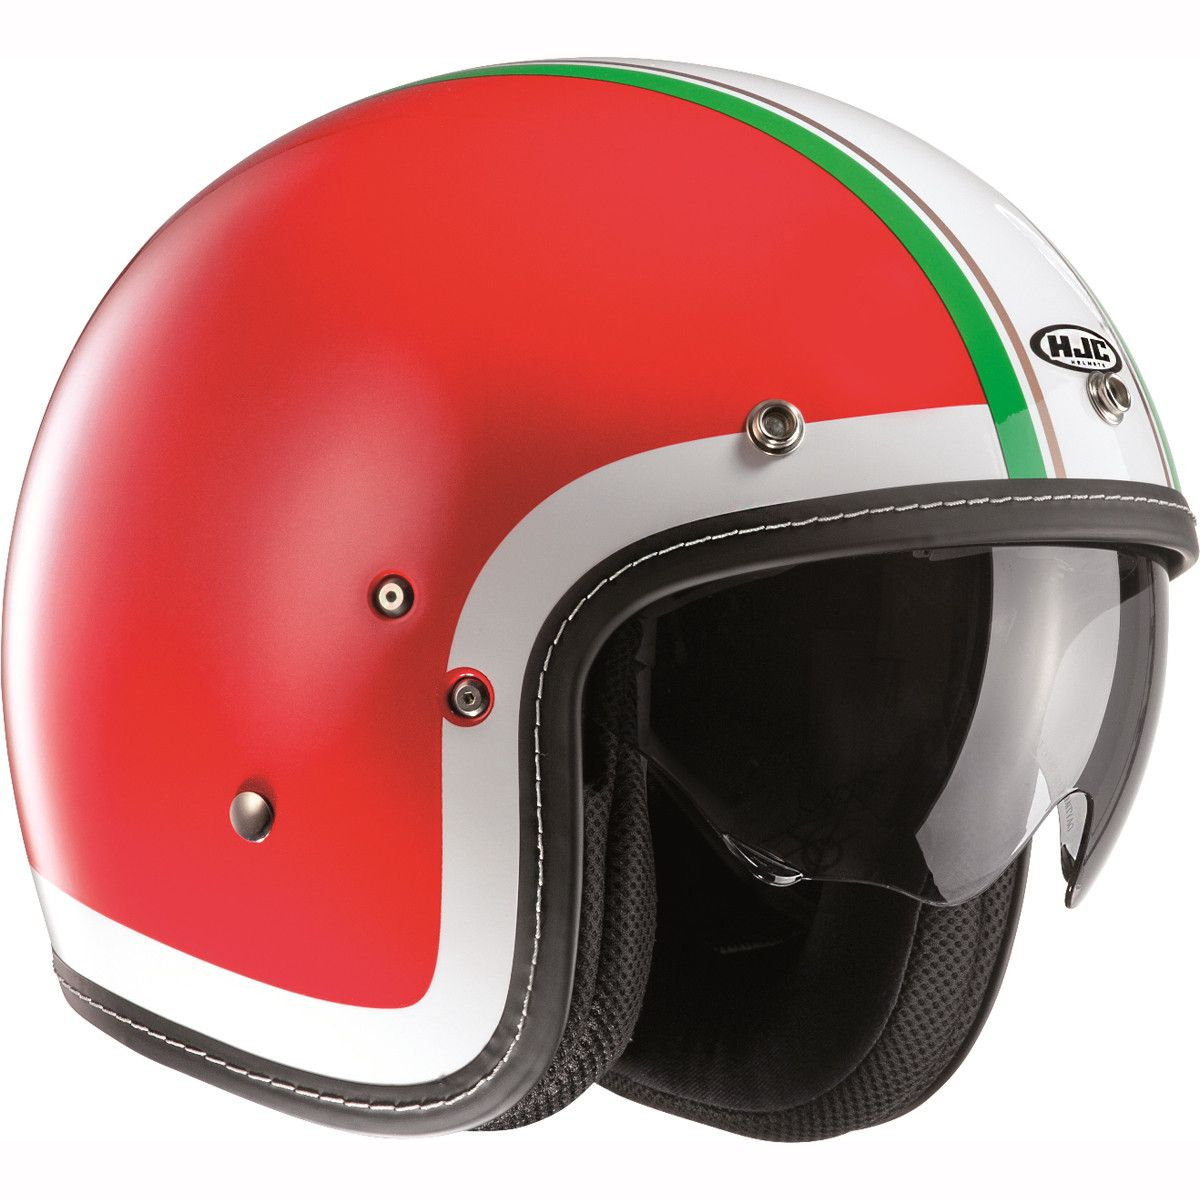 *SHIPS SAME DAY* Bell Custom 500 Open Face Motorcycle Helmet Solid, Carbon, 74